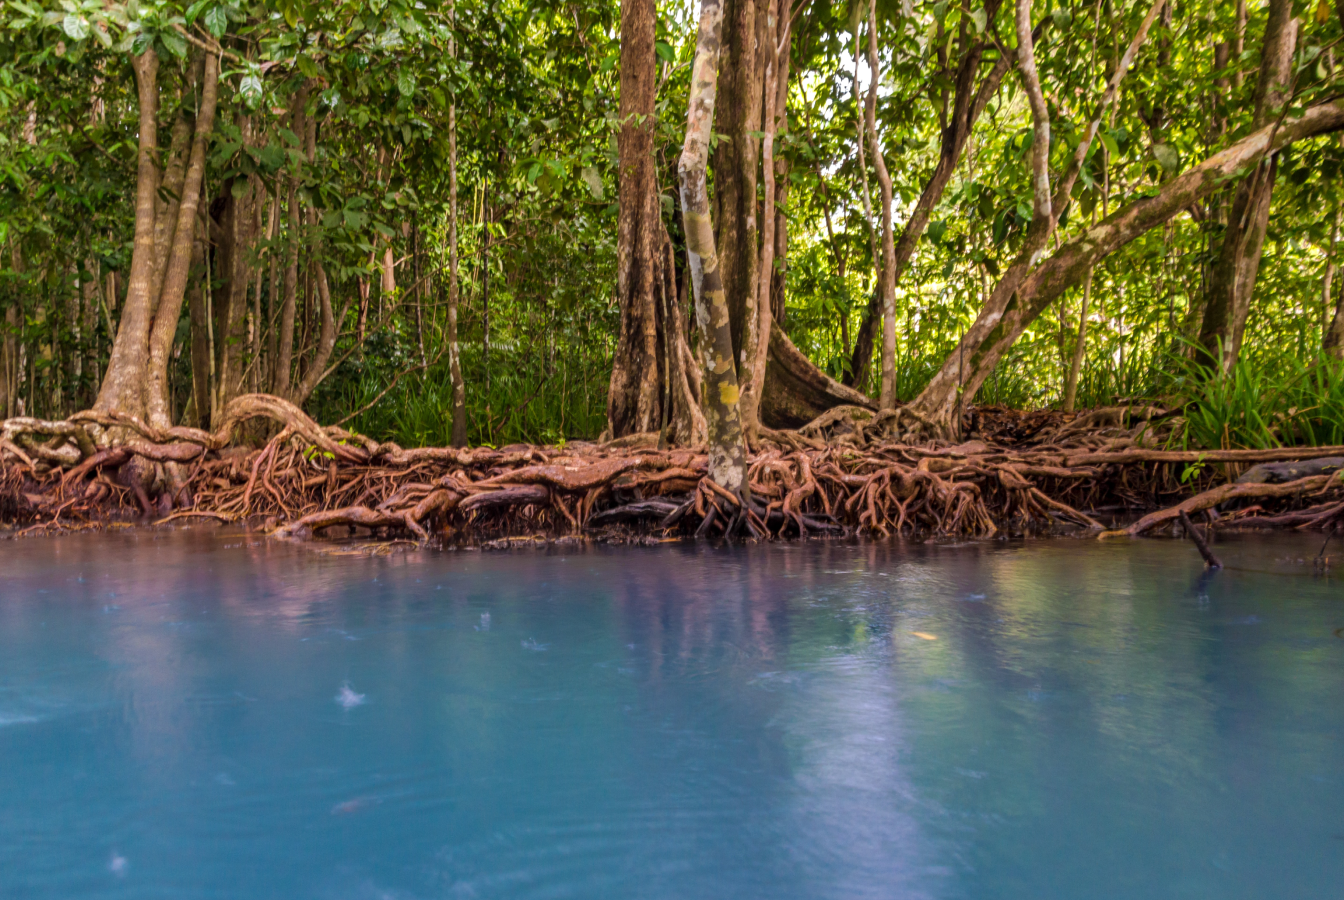 A mangrove acting as a natural carbon sink.